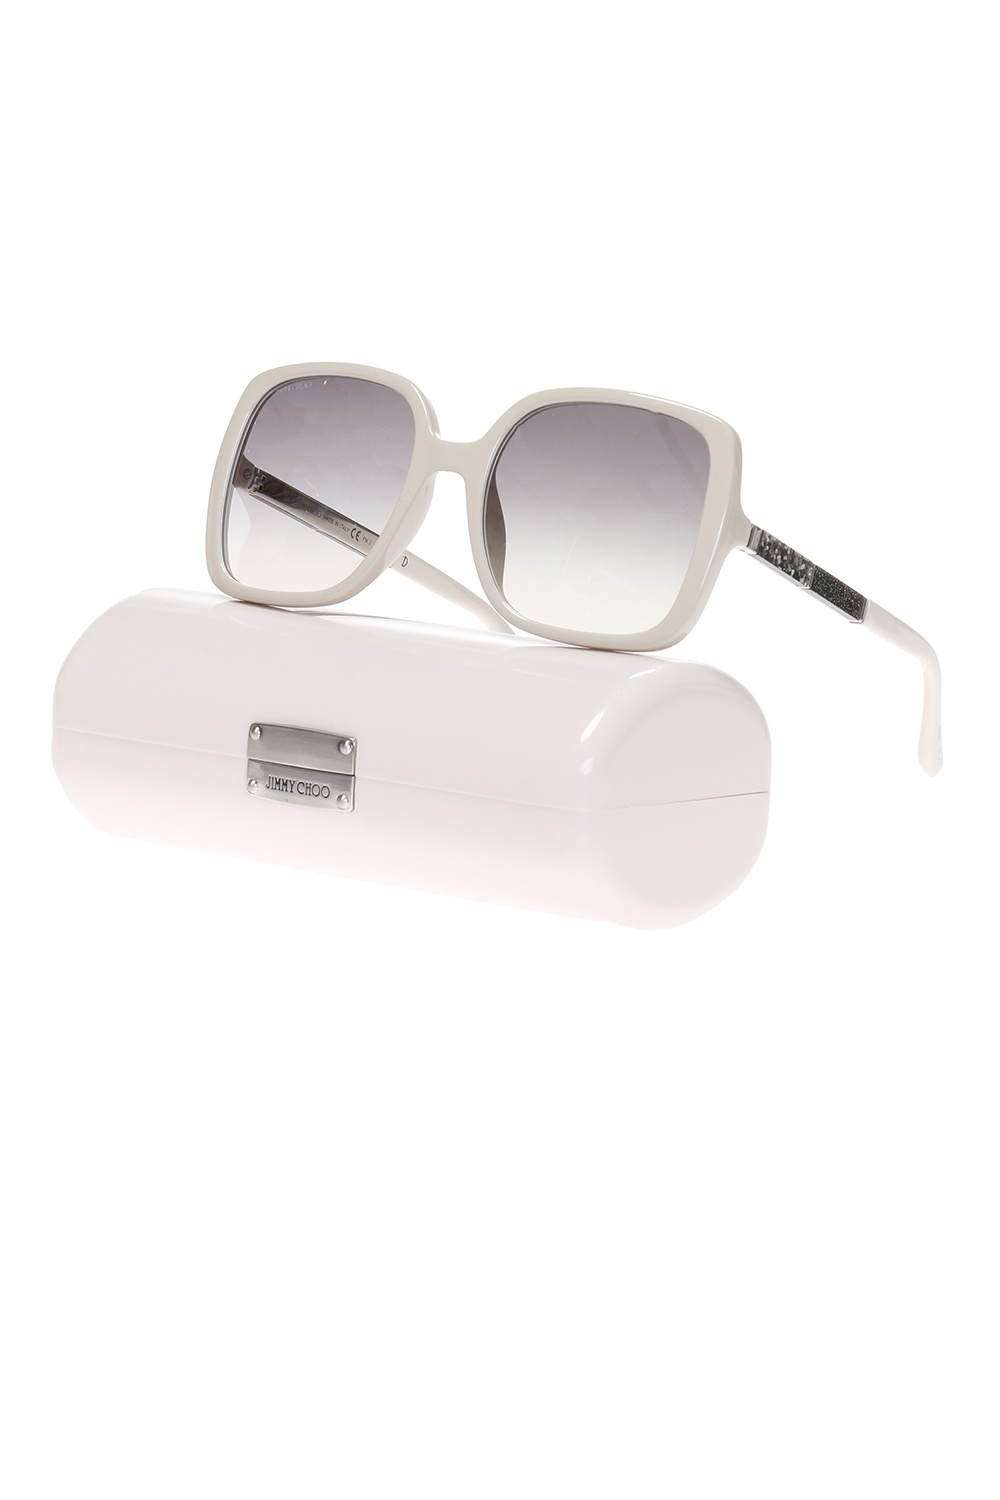 Jimmy Choo 'Chari' sunglasses